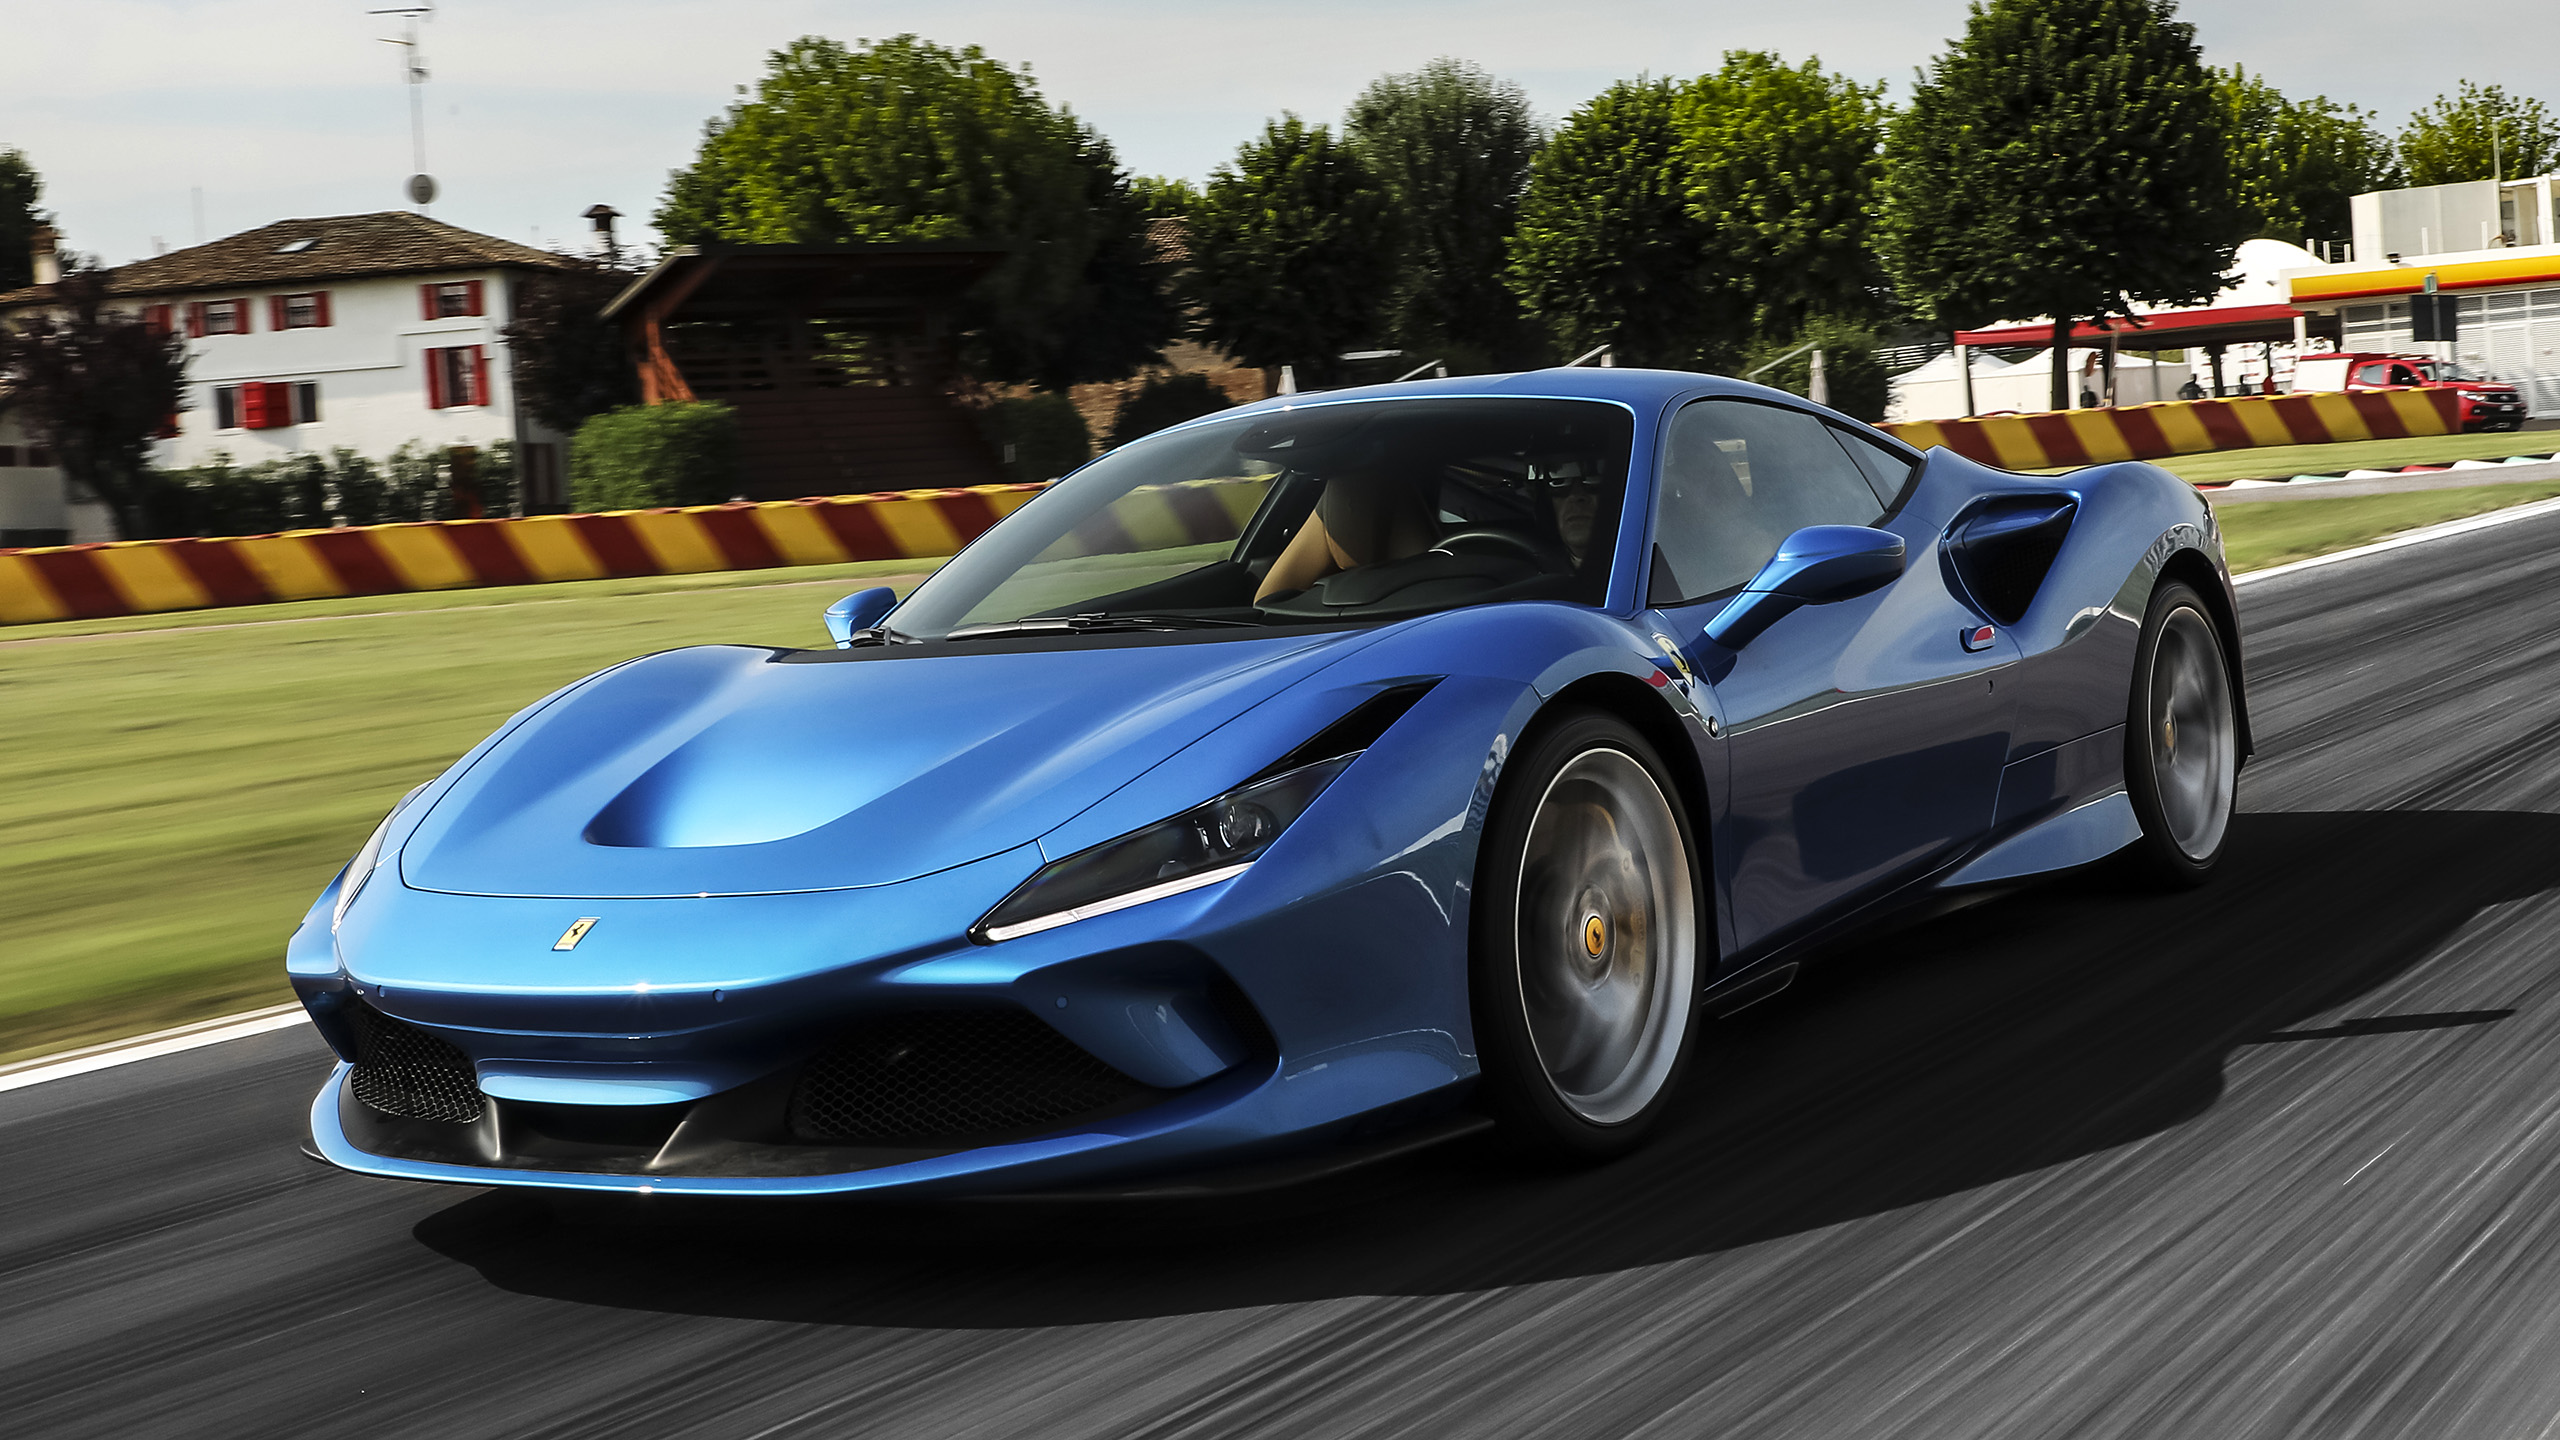 2020 ferrari f8 tributo first drive review | photos, specs